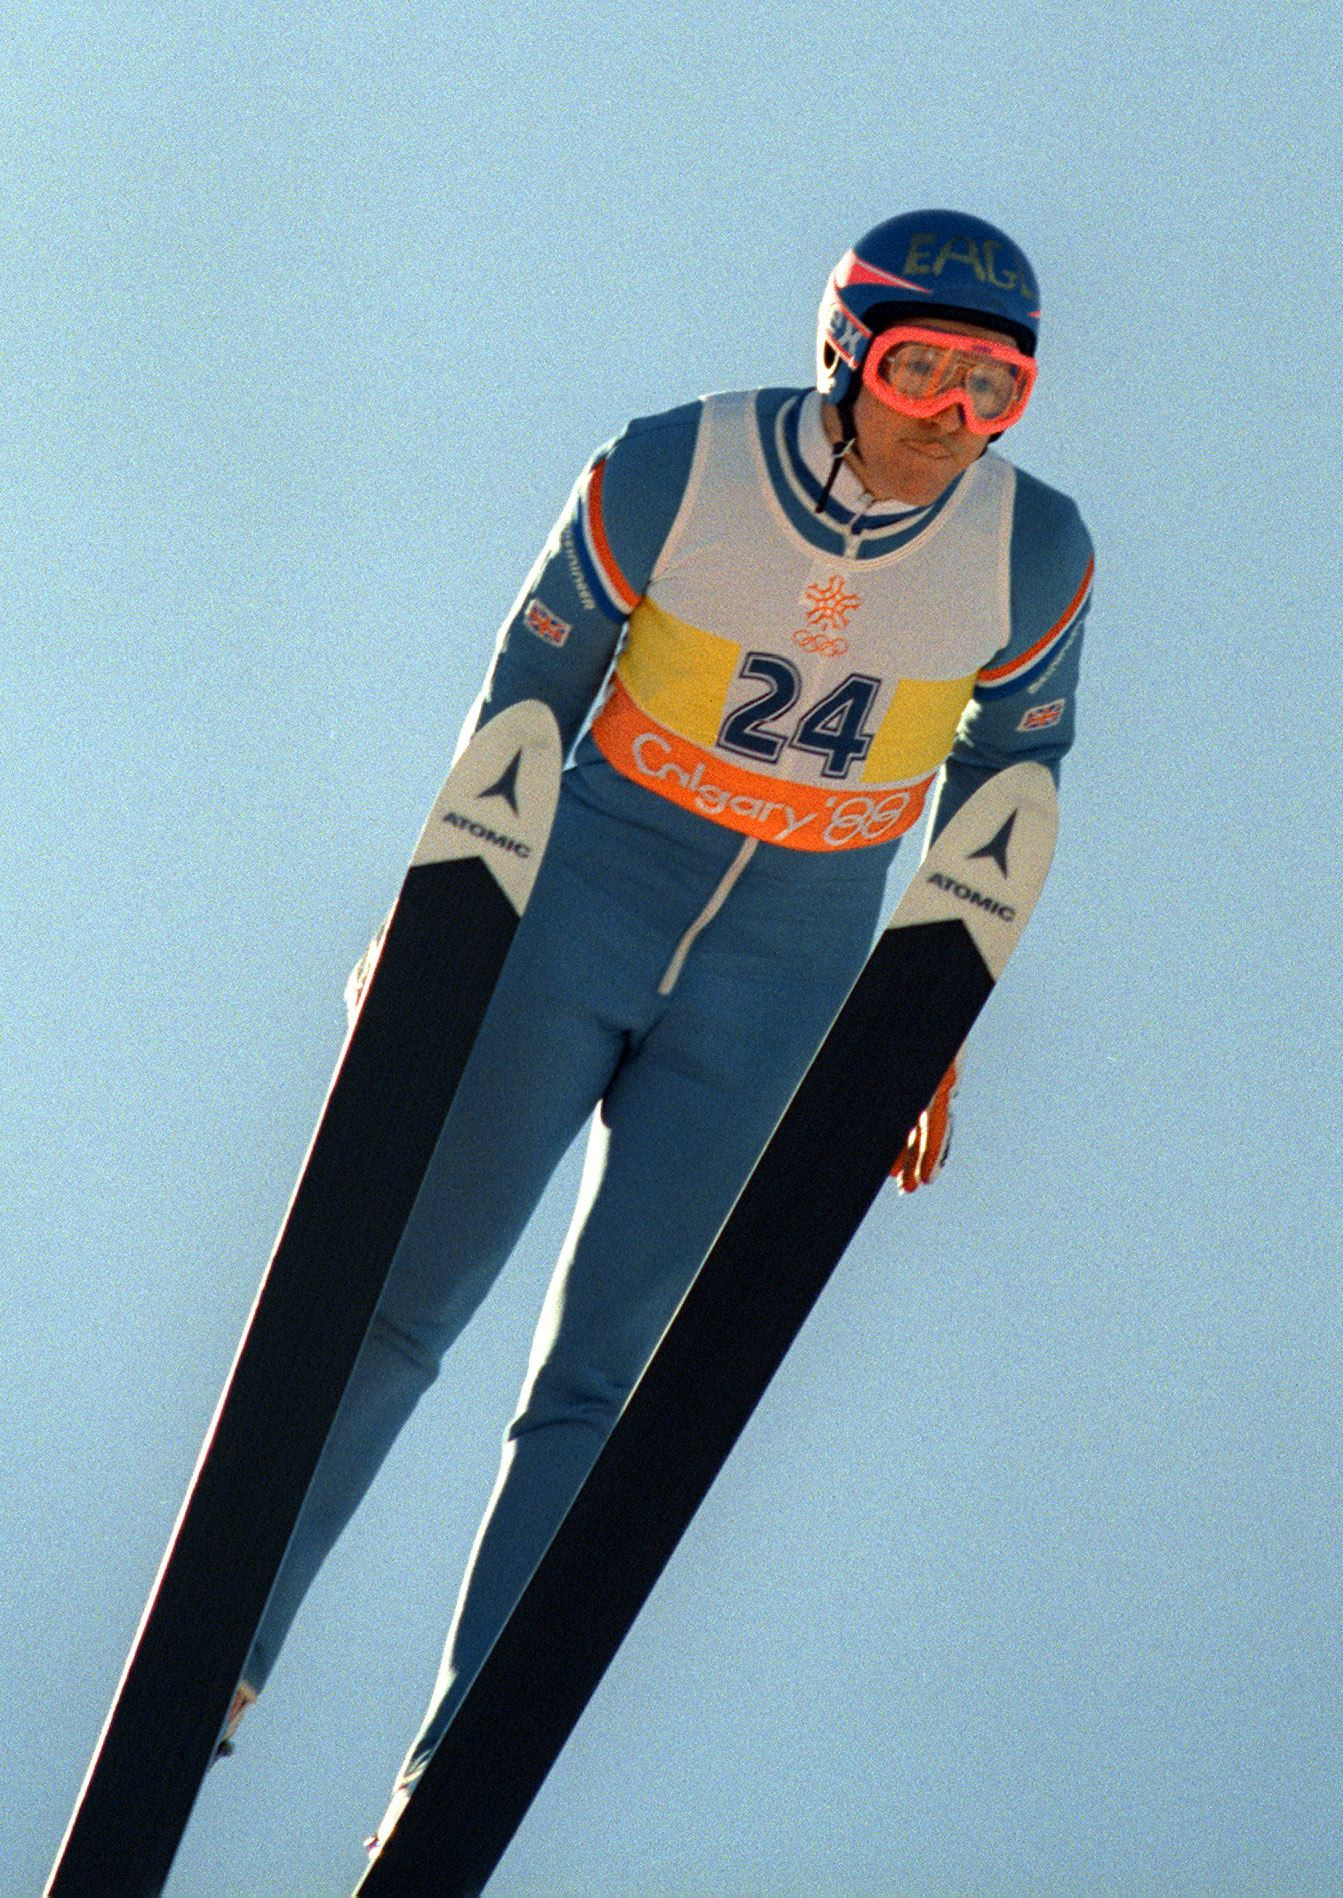 Eddie the Eagle in action at the Calgary 1988 Winter Olympics ©Getty Images